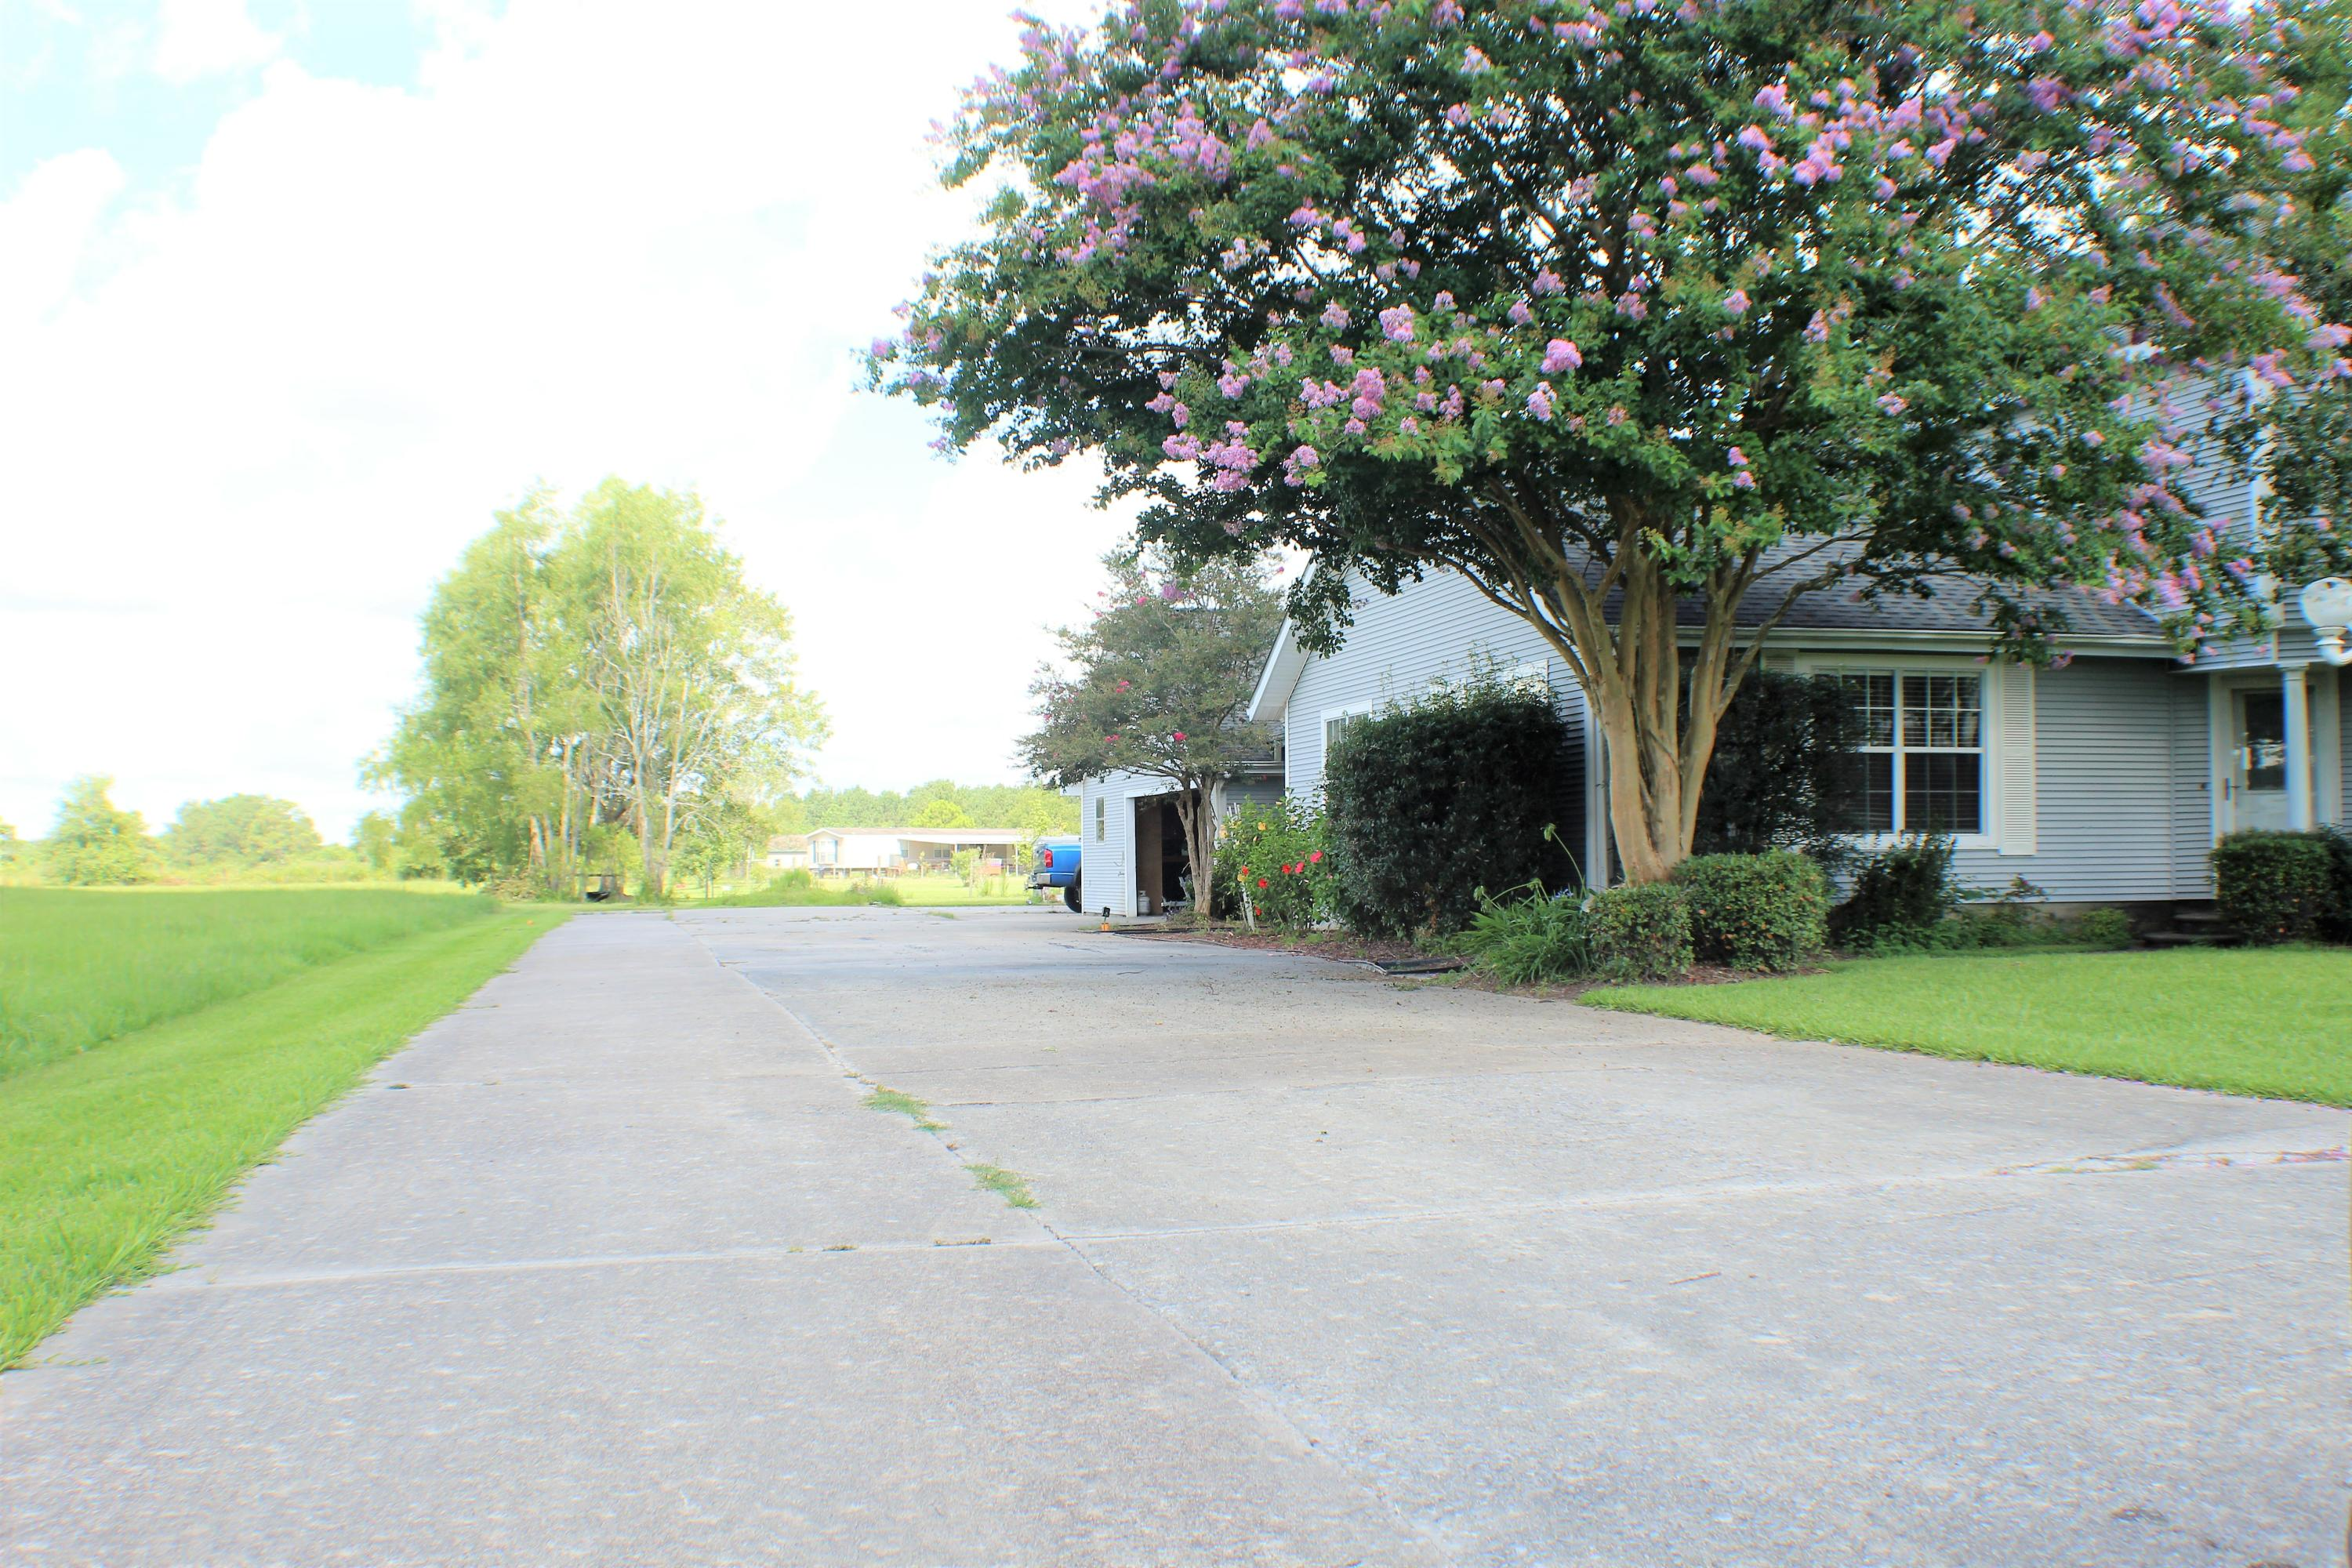 Sulphur home for sale, 5148 Thompson Rd, Sulphur LA - $250,000